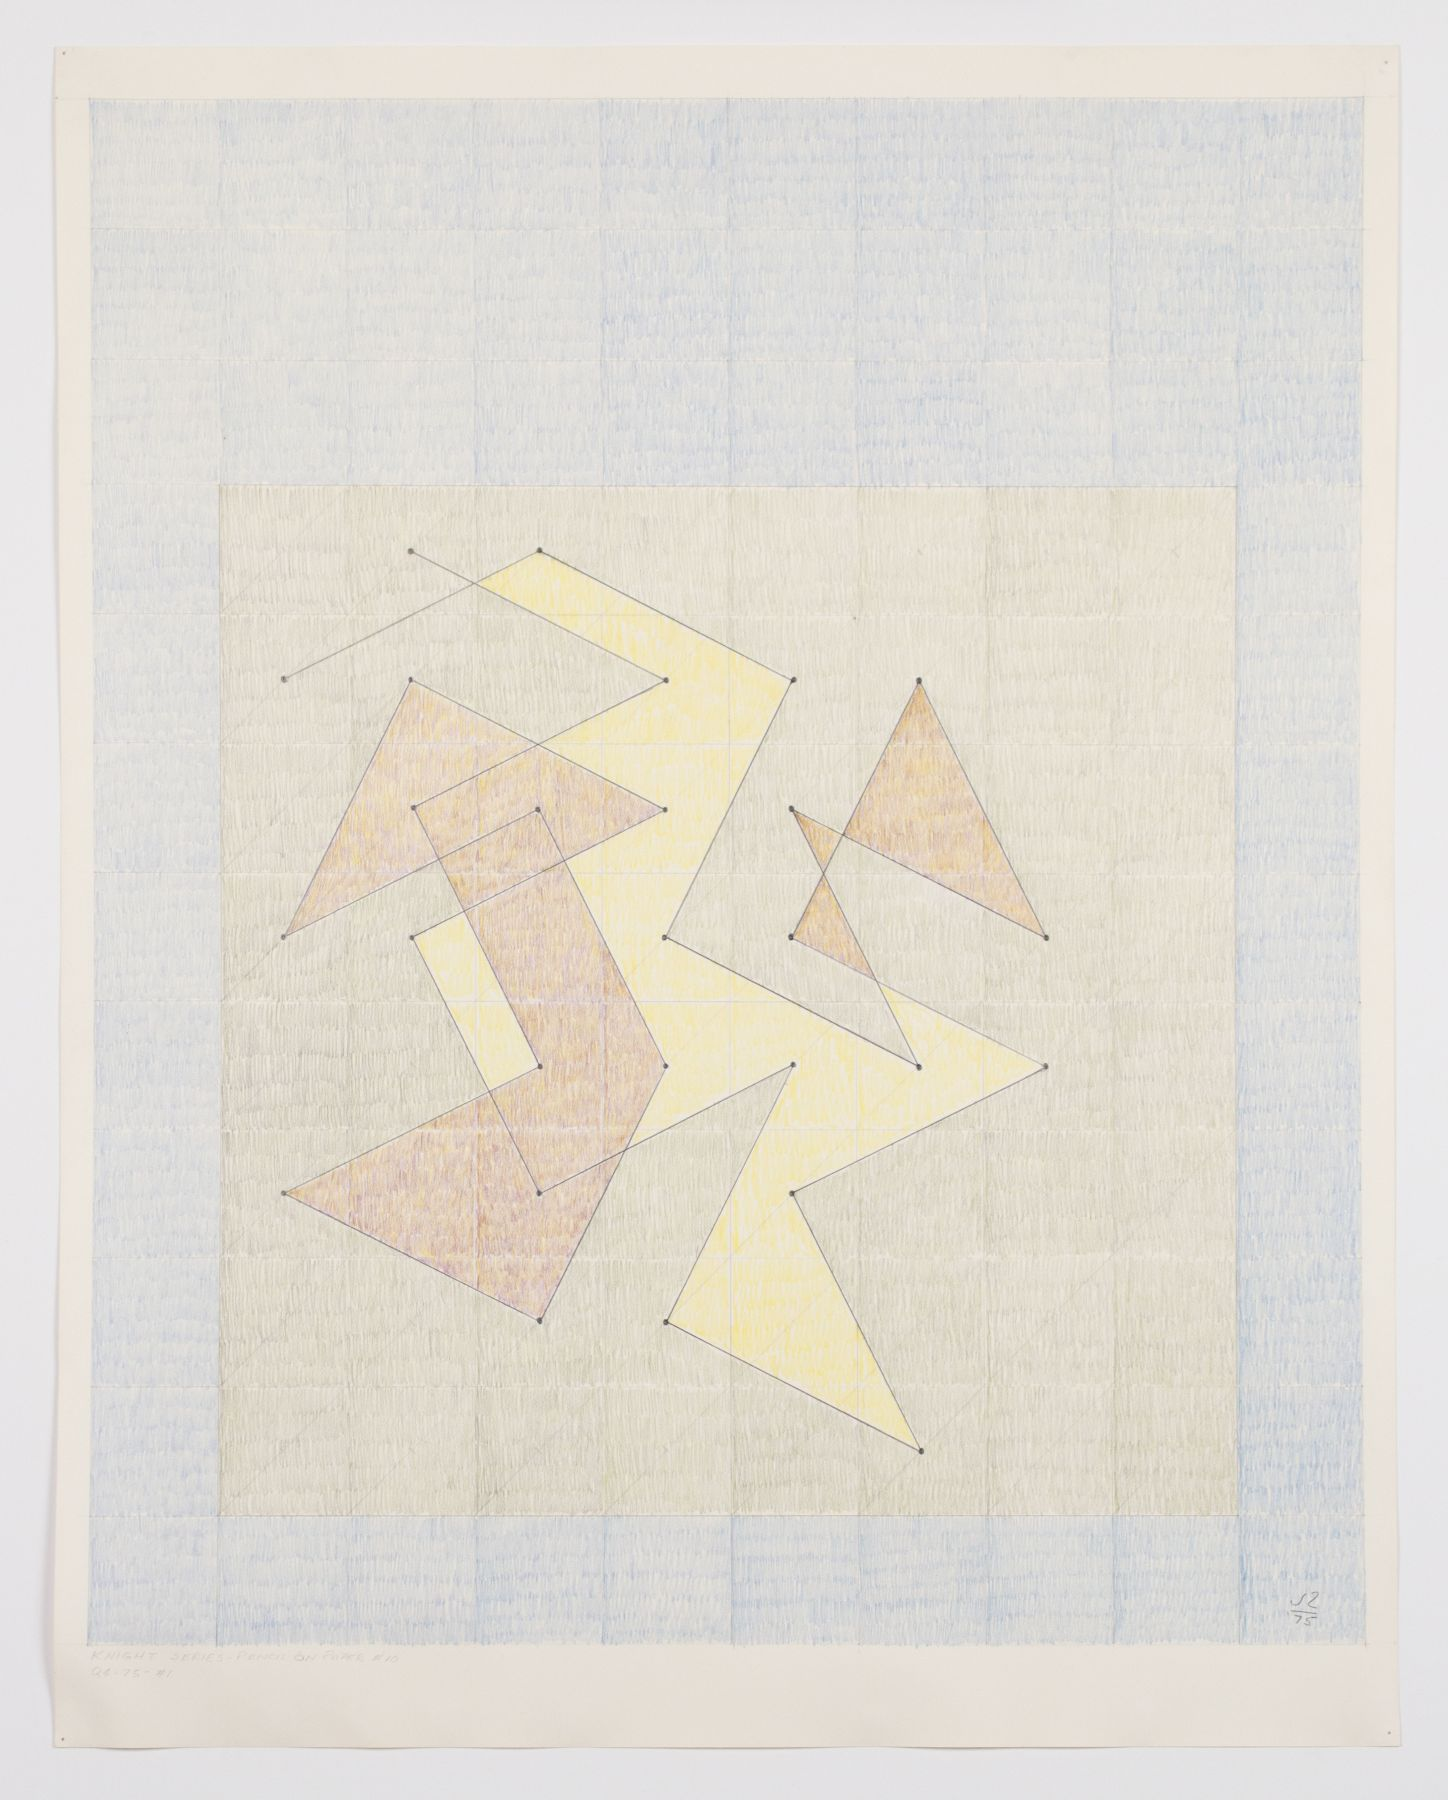 Knight Series - Pencil on paper #10 (Q4-75 #1), 1975, Graphite and colored pencil on paper